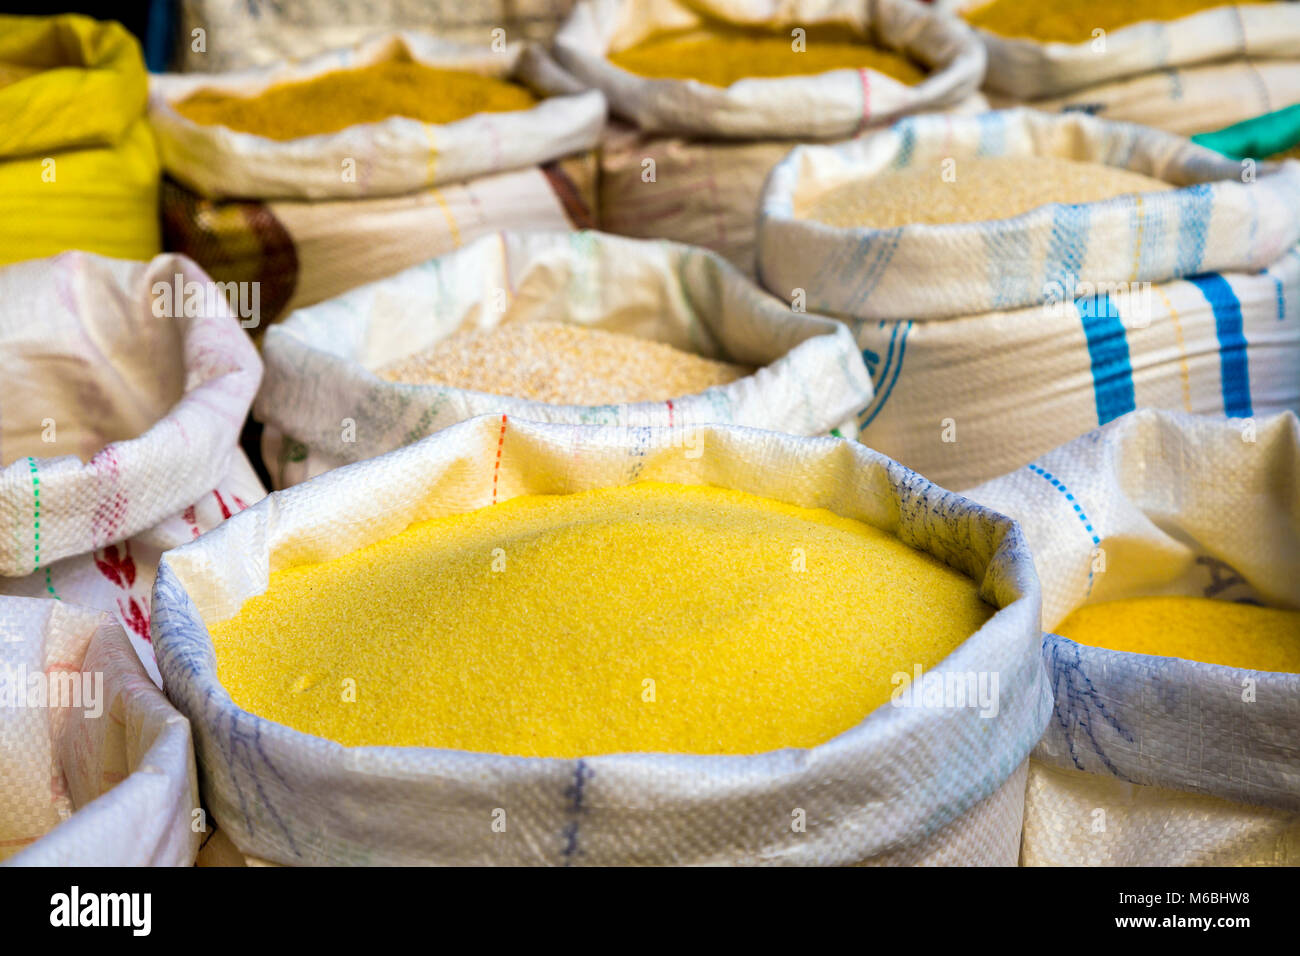 Sacks of grains and flours at a stall in the Old Medina souks in Fes, Morocco - Stock Image